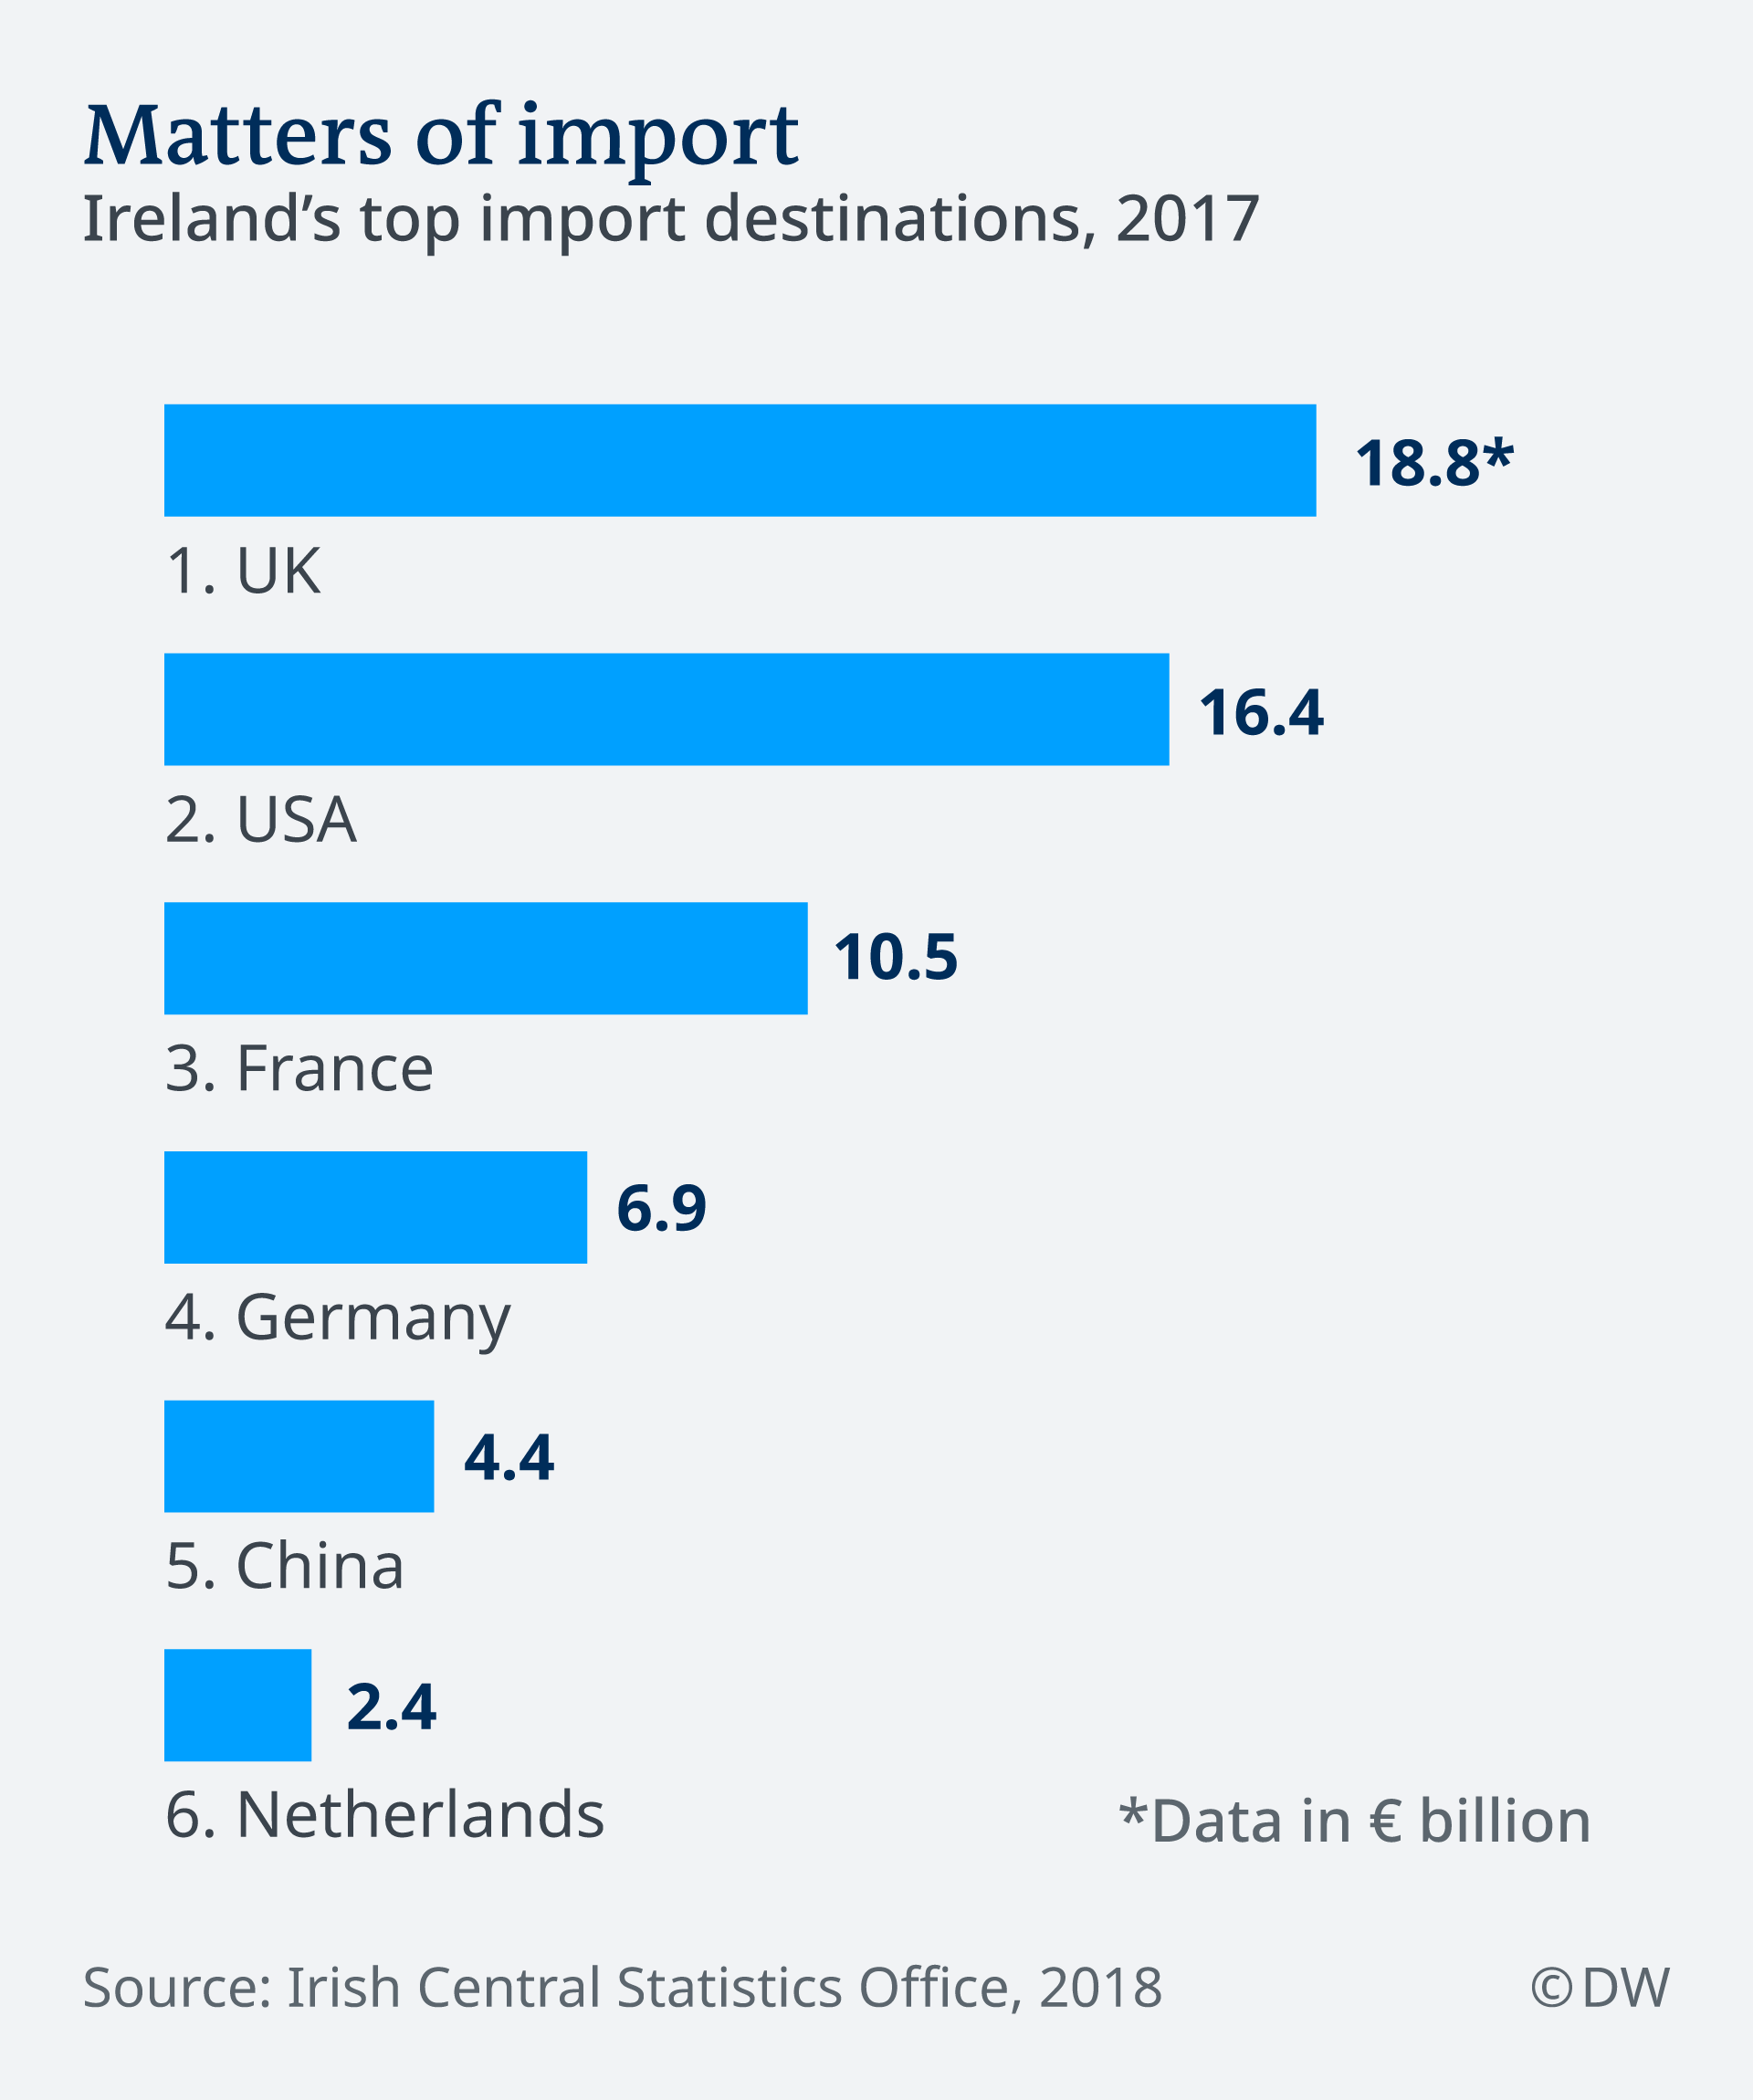 Ireland's top import destinations in 2017